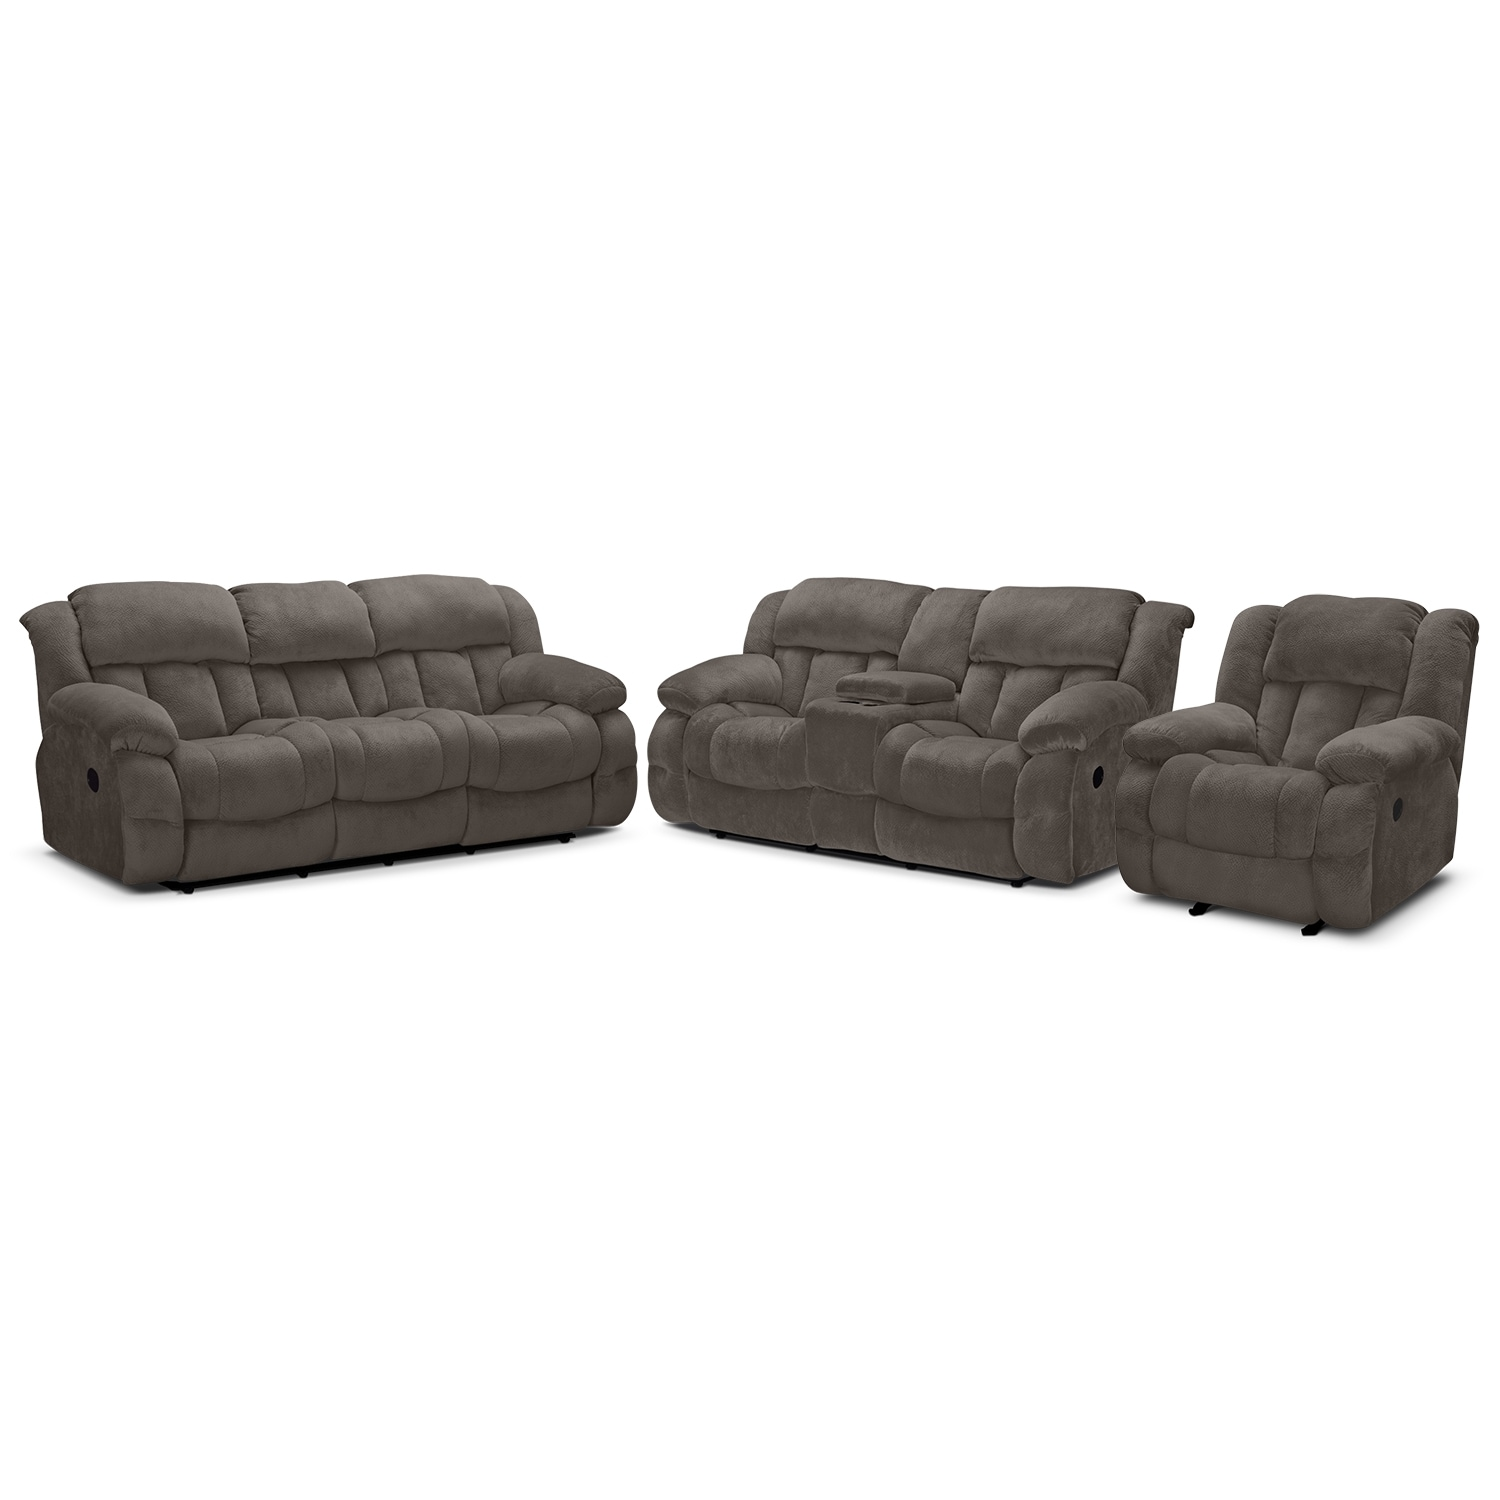 Park City Dual Reclining Sofa, Loveseat and Glider Recliner Set - Gray